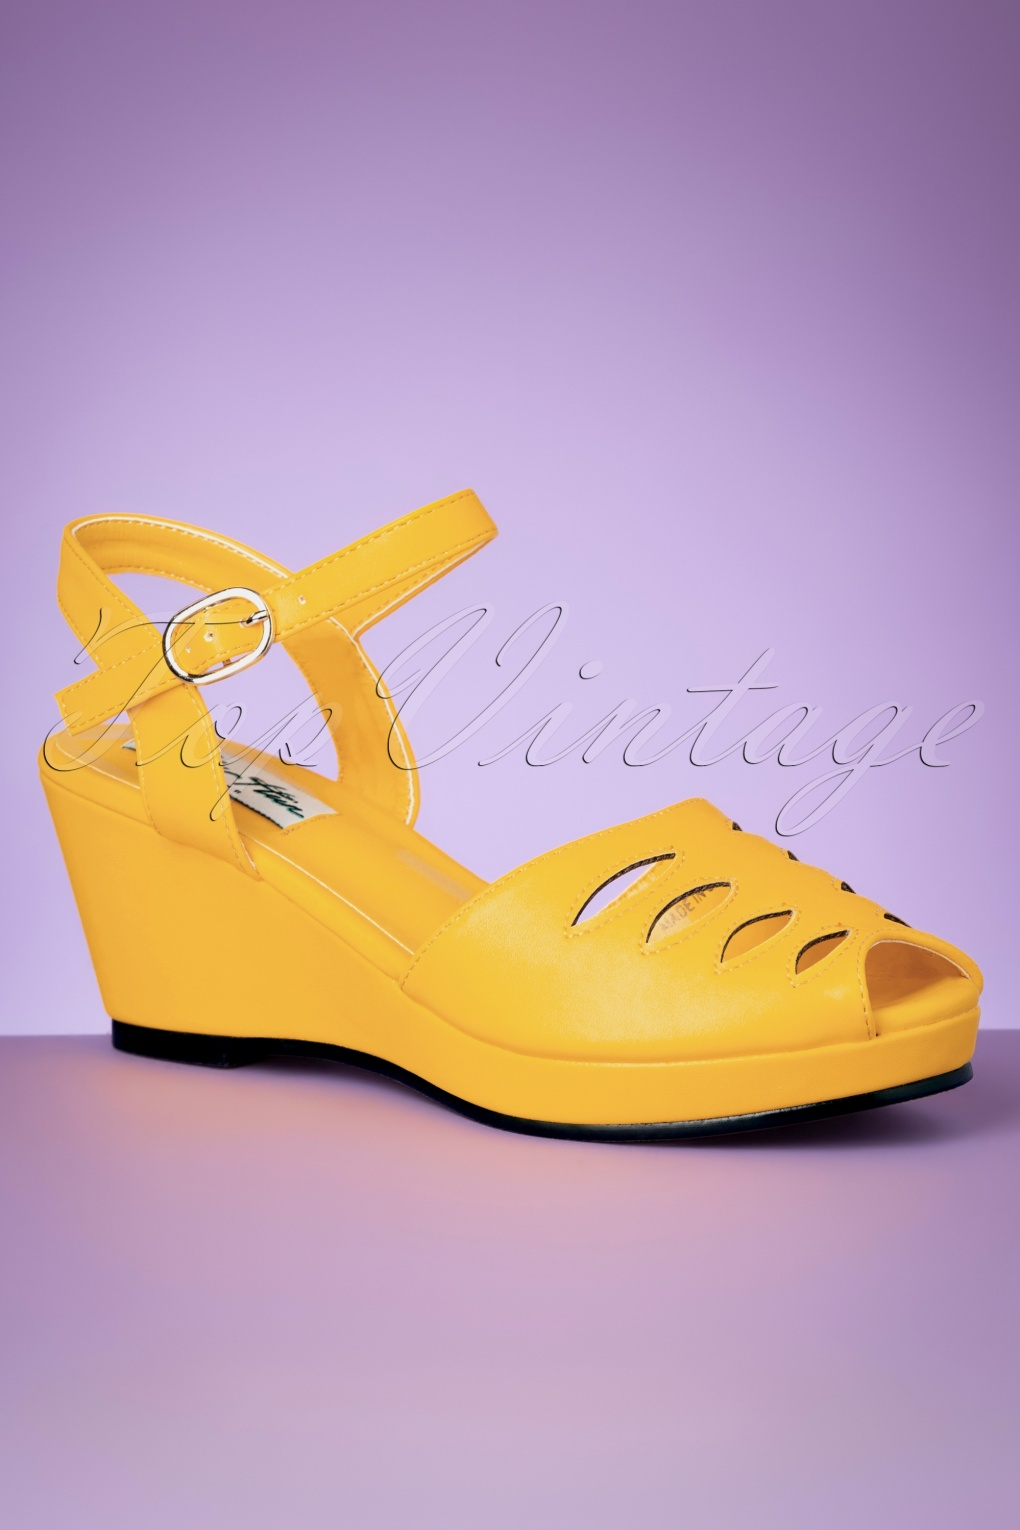 1940s Women's Footwear 60s Lily Wedge Sandals in Yellow £47.57 AT vintagedancer.com